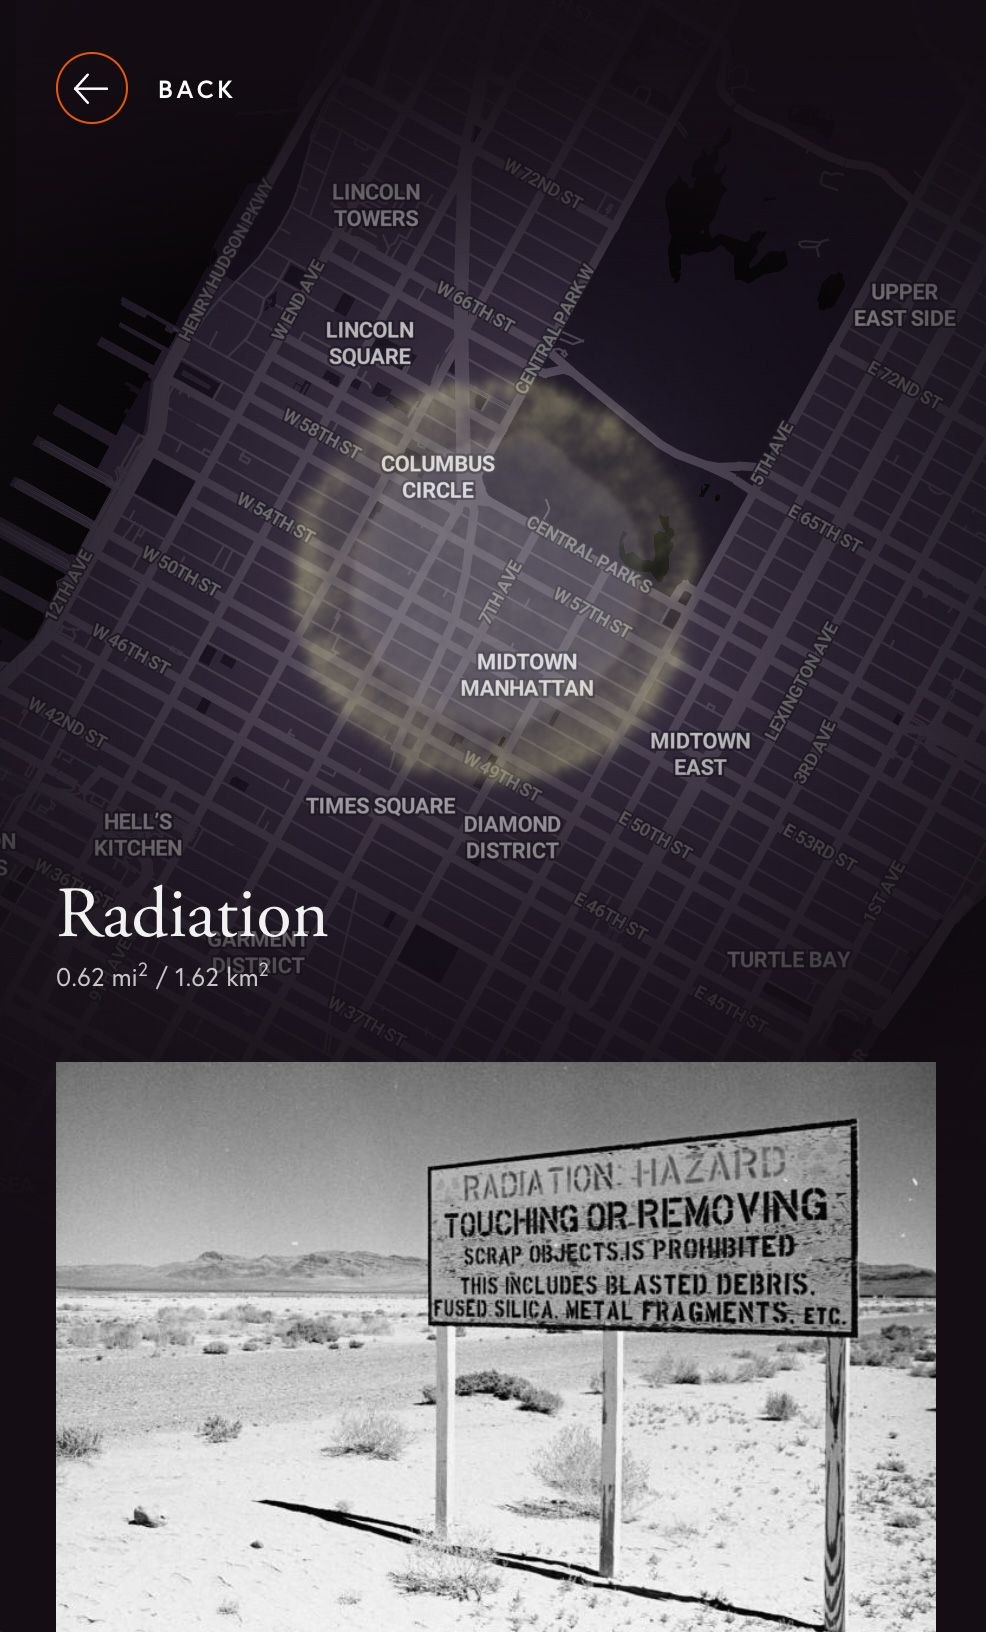 Mobile blast visualization radiation effects